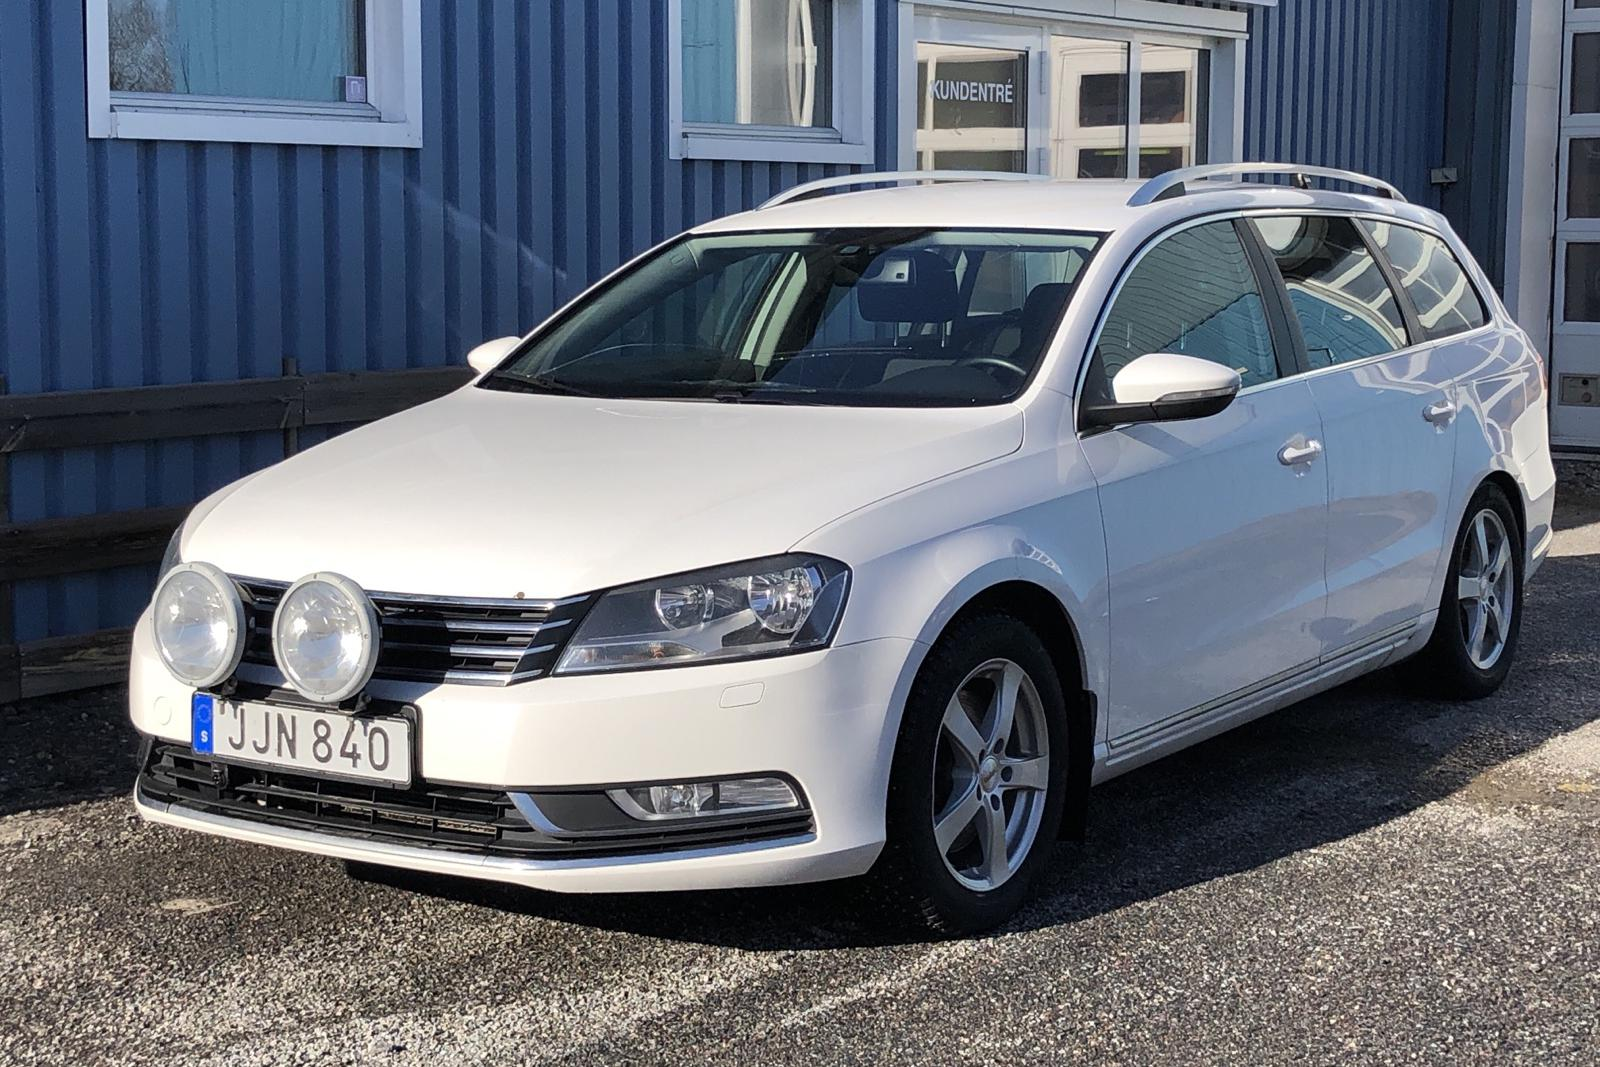 VW Passat 2.0 TDI BlueMotion Technology Variant 4Motion (140hk) - 137 270 km - Manual - white - 2014